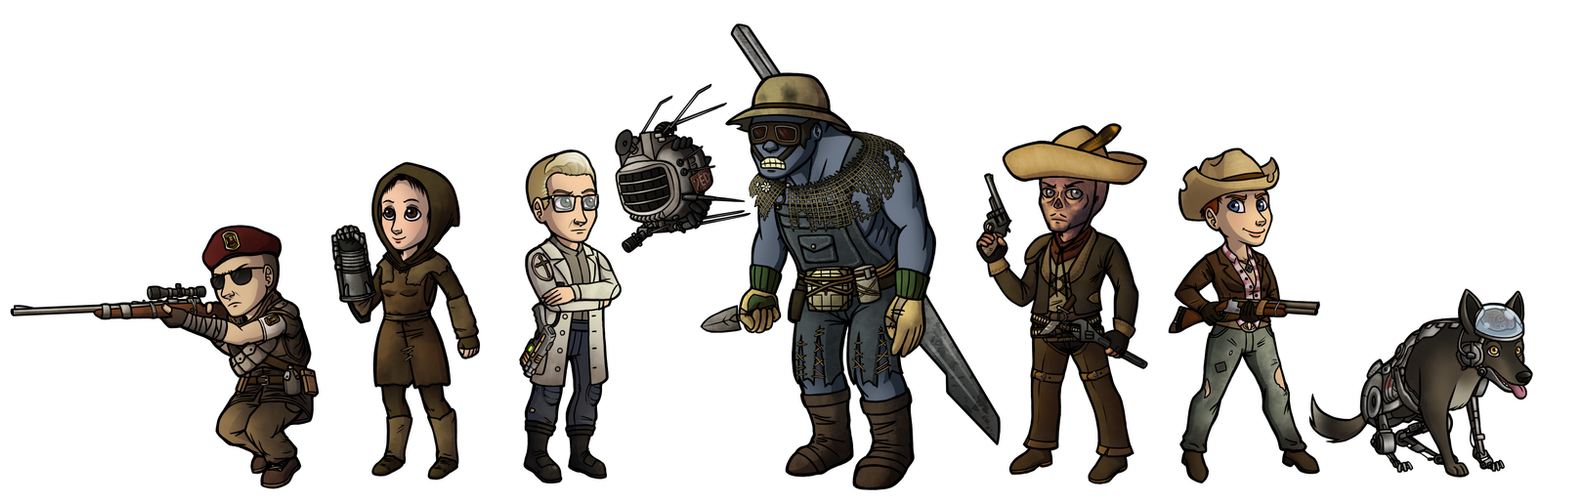 Fallout: New Vegas Companions by Doomed-Dreamer